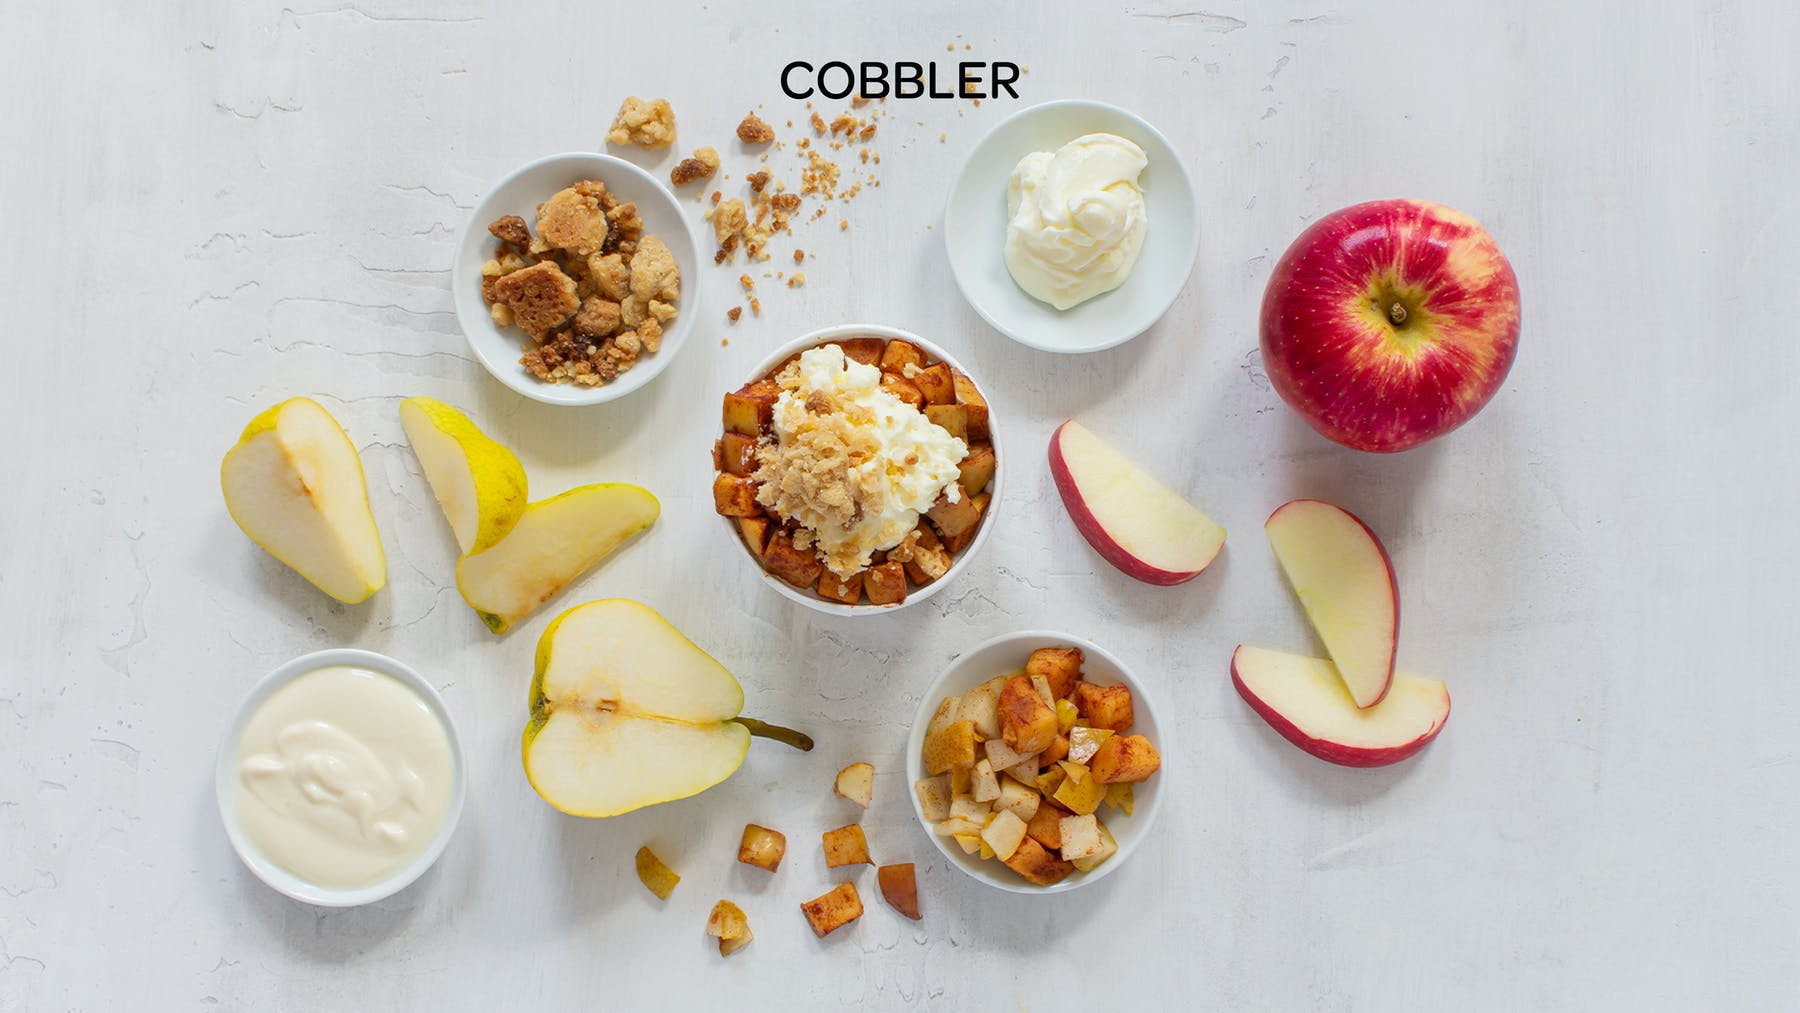 the ingredients of a cobbler honeybar spread out on a table